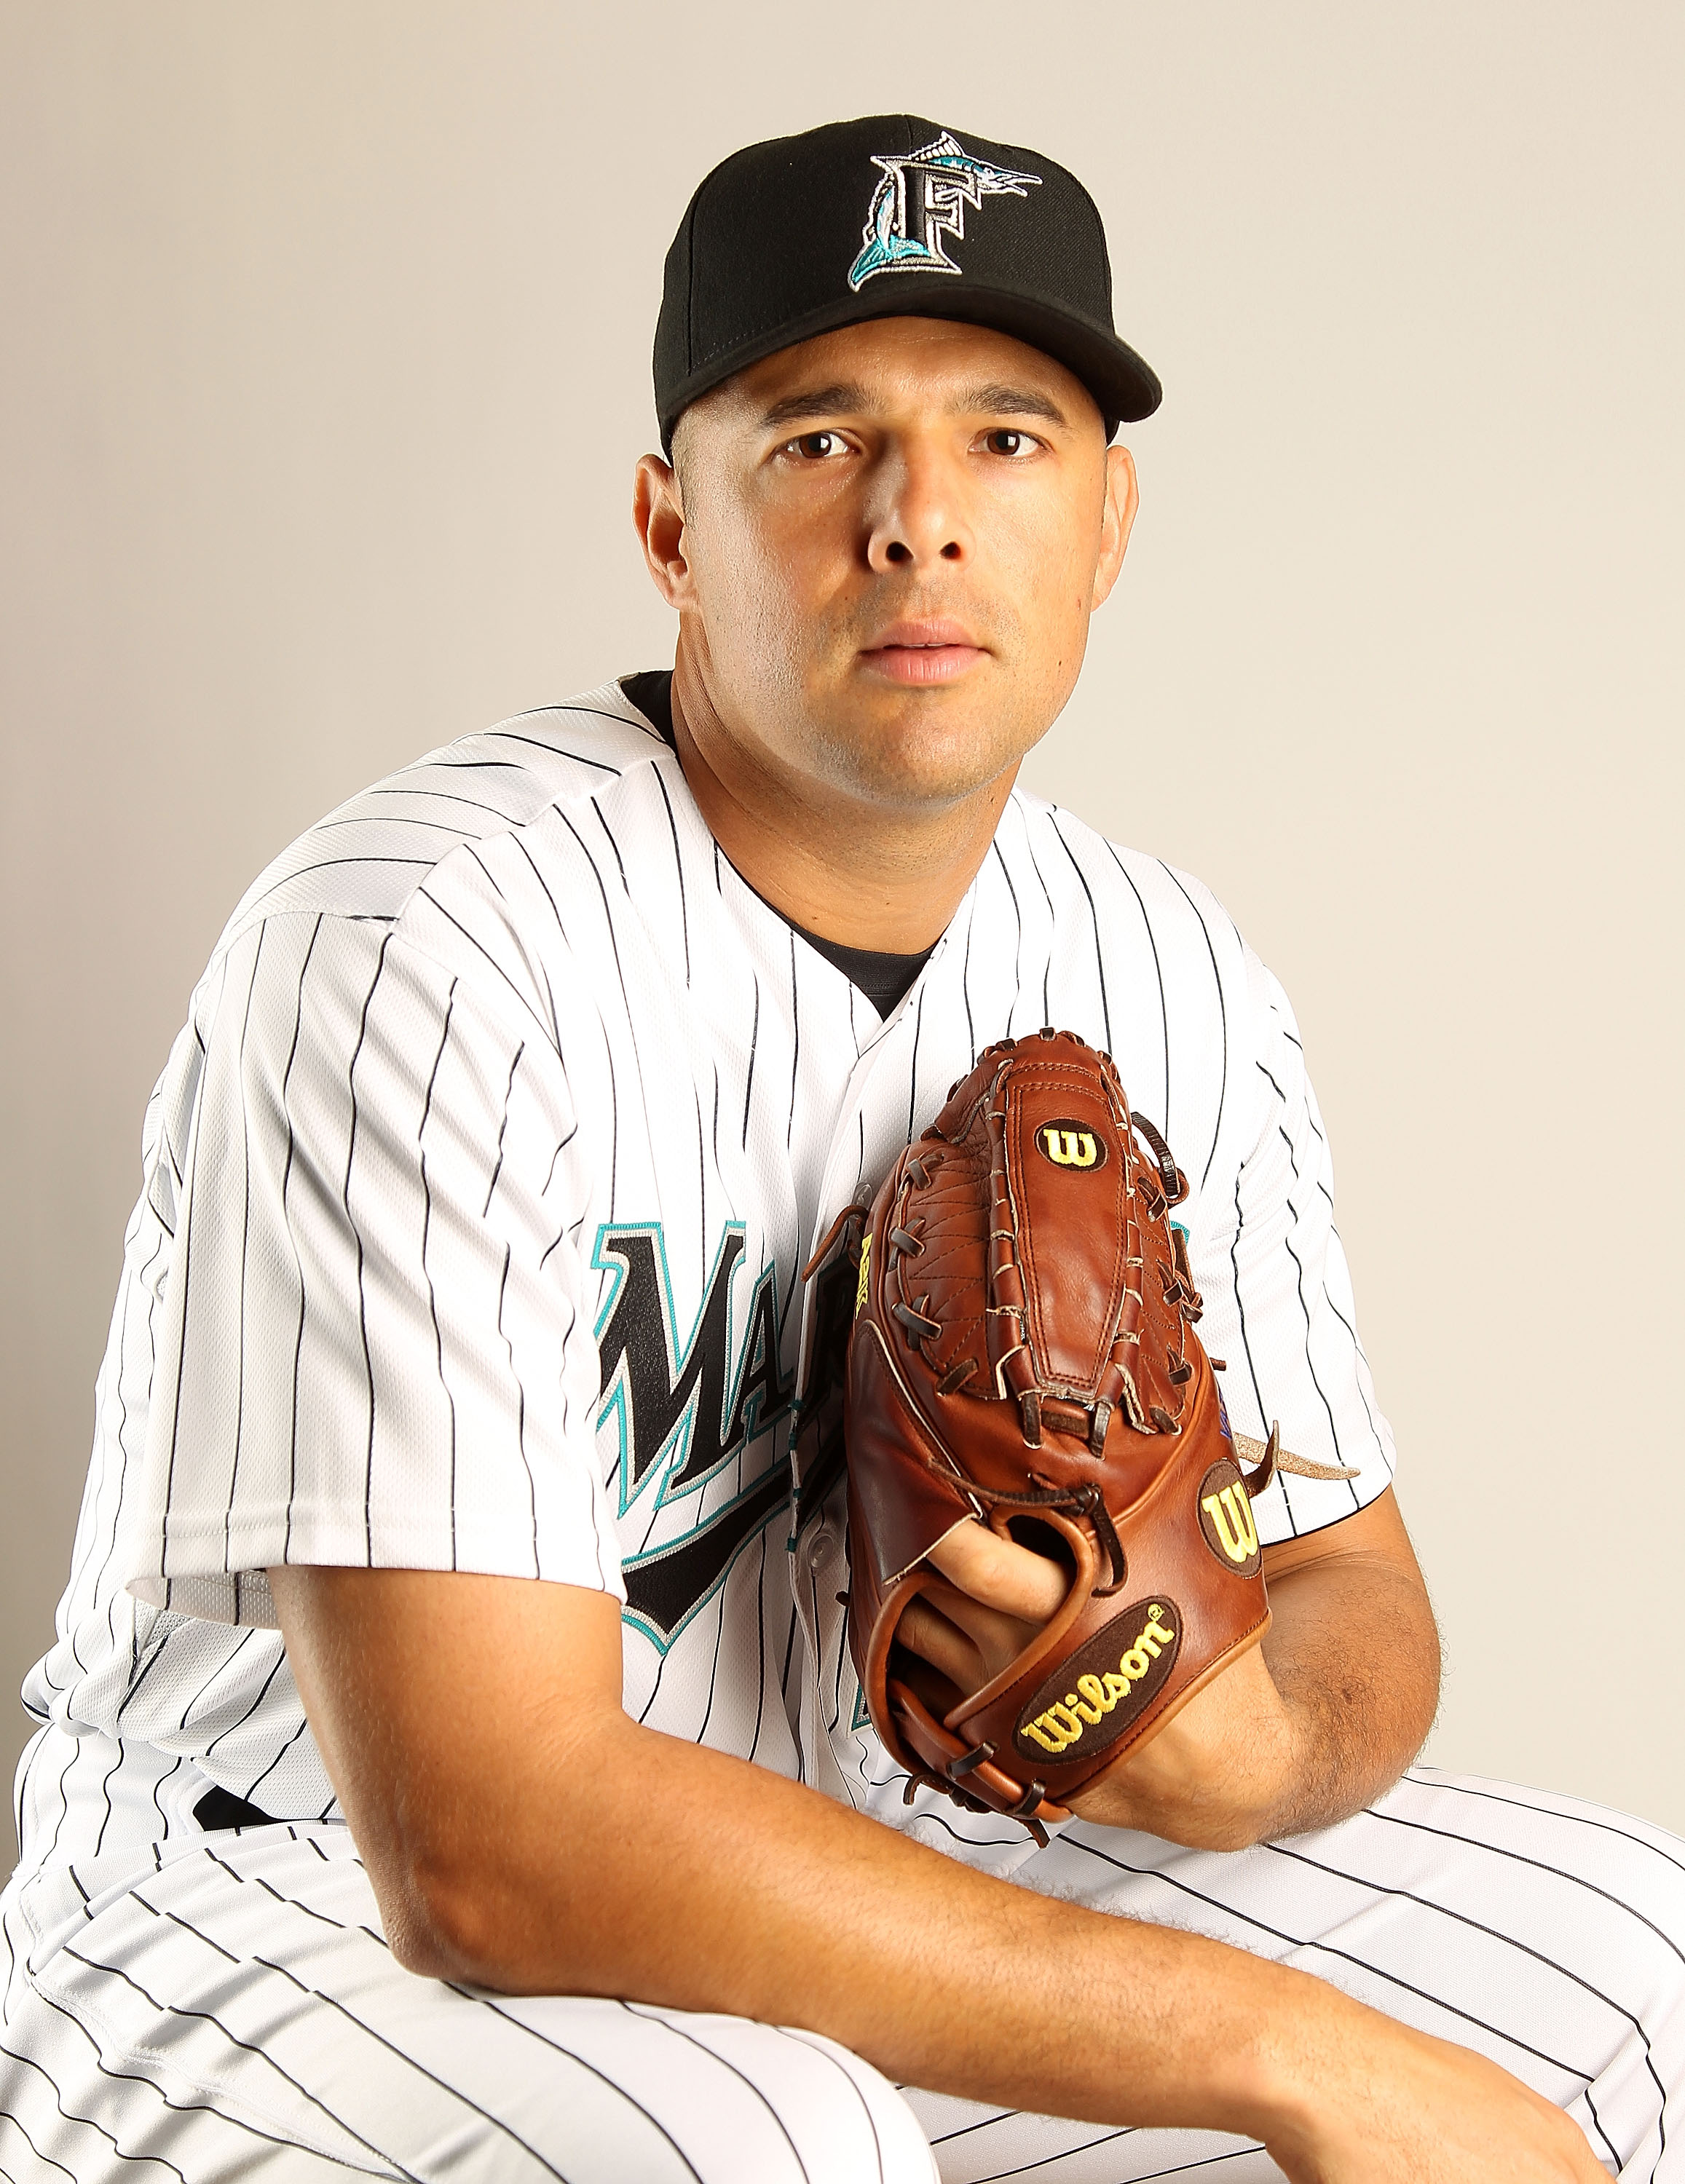 JUPITER, FL - FEBRUARY 23: Javier Vazquez #23 of the Florida Marlins during Photo Day at Roger Dean Stadium on February 23, 2011 in Jupiter, Florida.  (Photo by Mike Ehrmann/Getty Images)